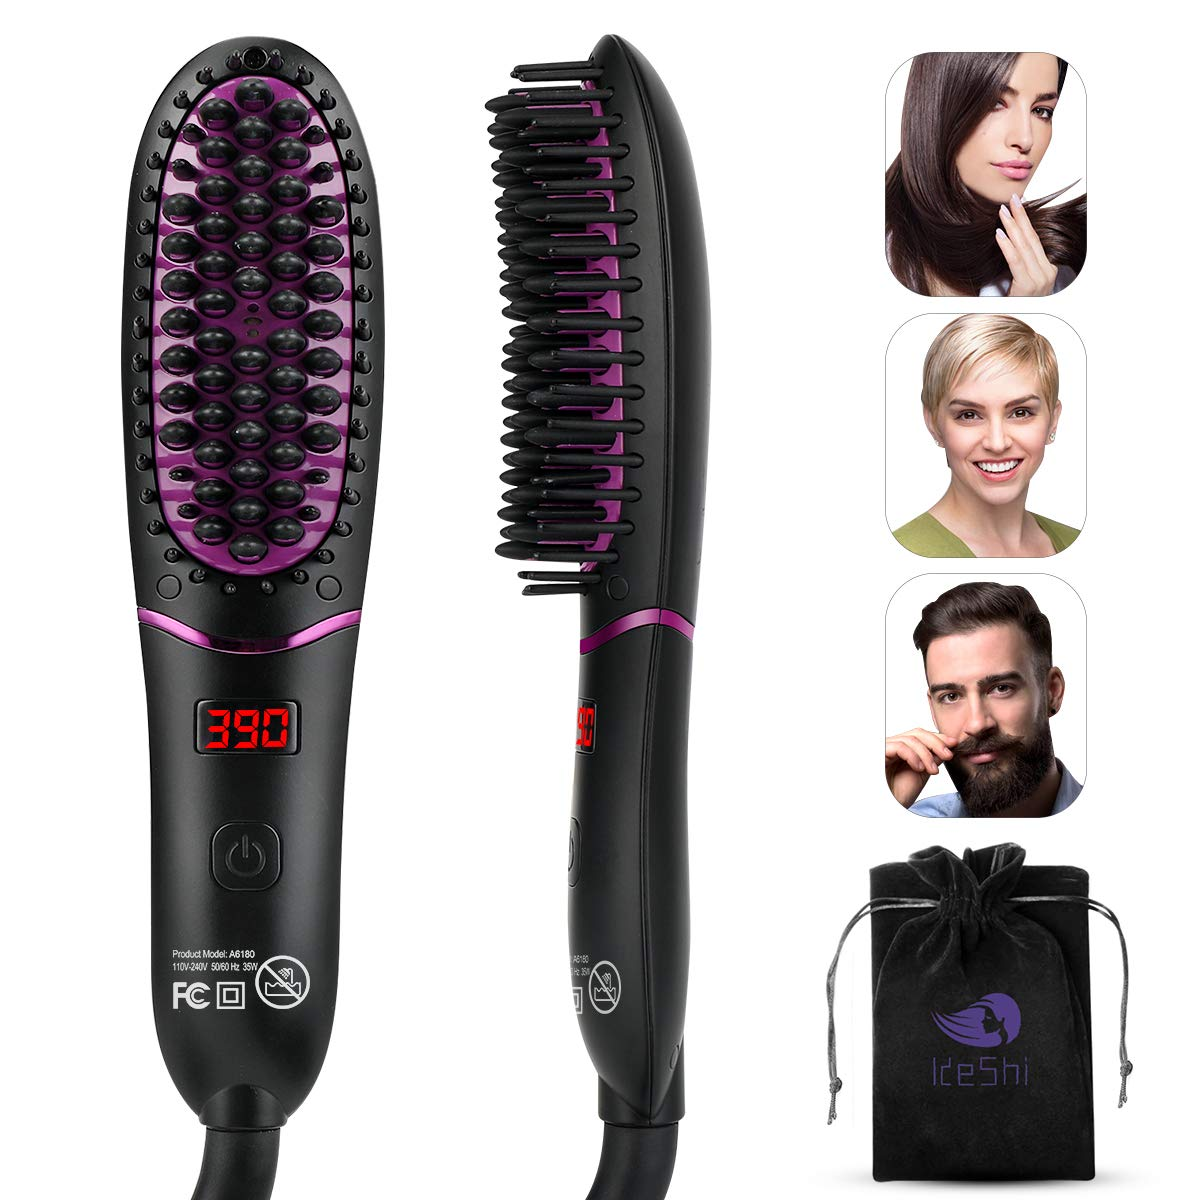 Ionic Hair Straightener Brush, KESHI 30s Fast Heating Ceramic Hair Straightening Brush, Portable Electric Straightening Comb with Anti Scald Feature 5 Adjustable Temperature, Auto-Off Dual Voltage